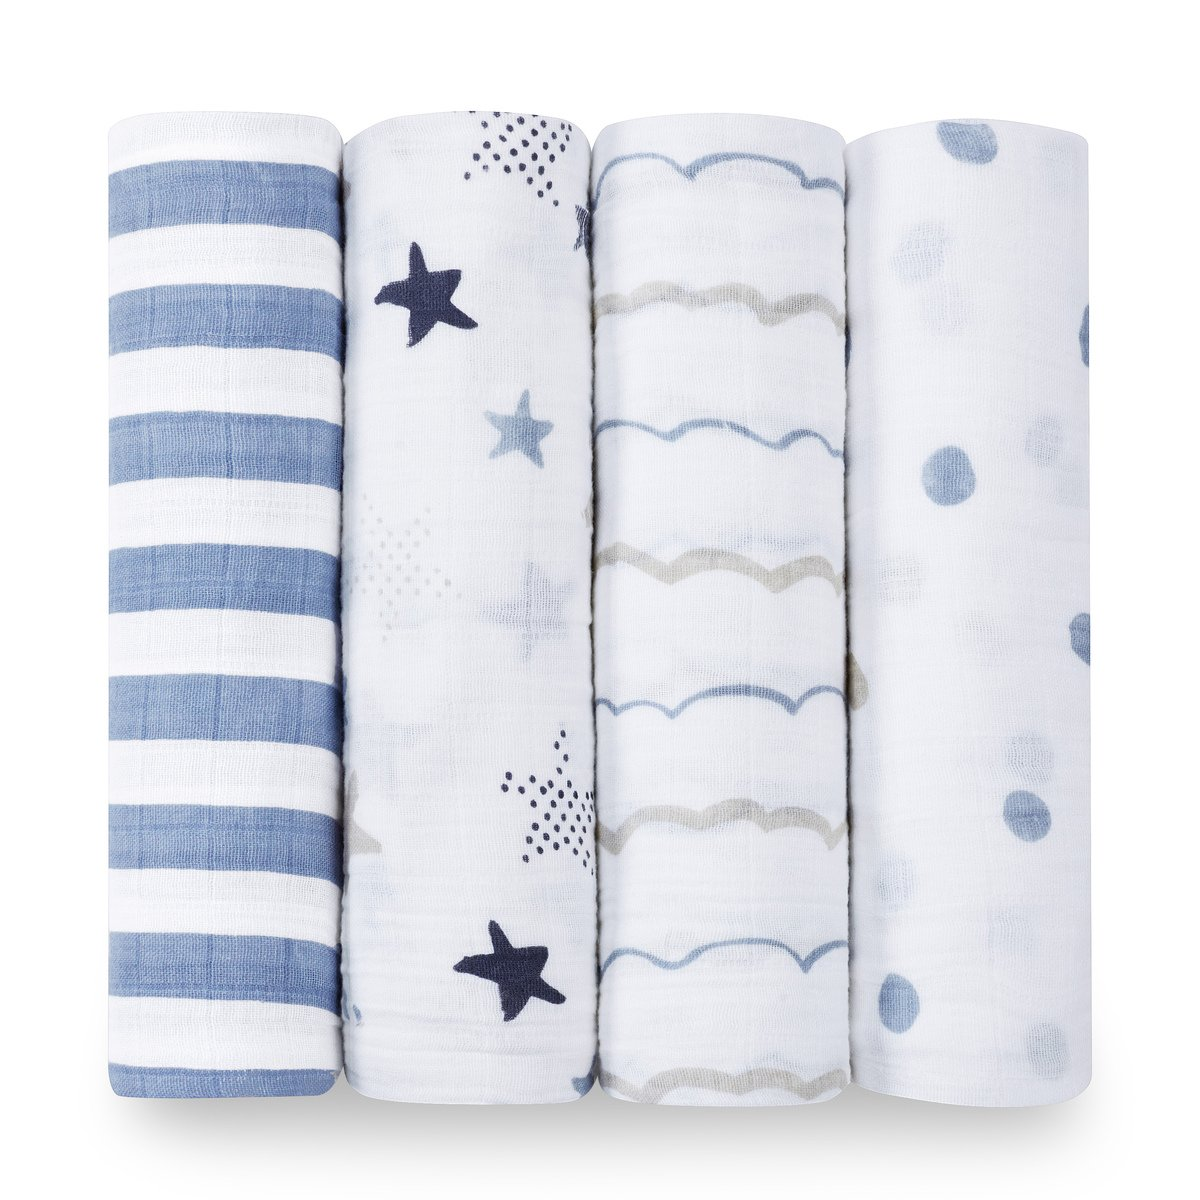 aden + anais swaddle 4 pack, rock star